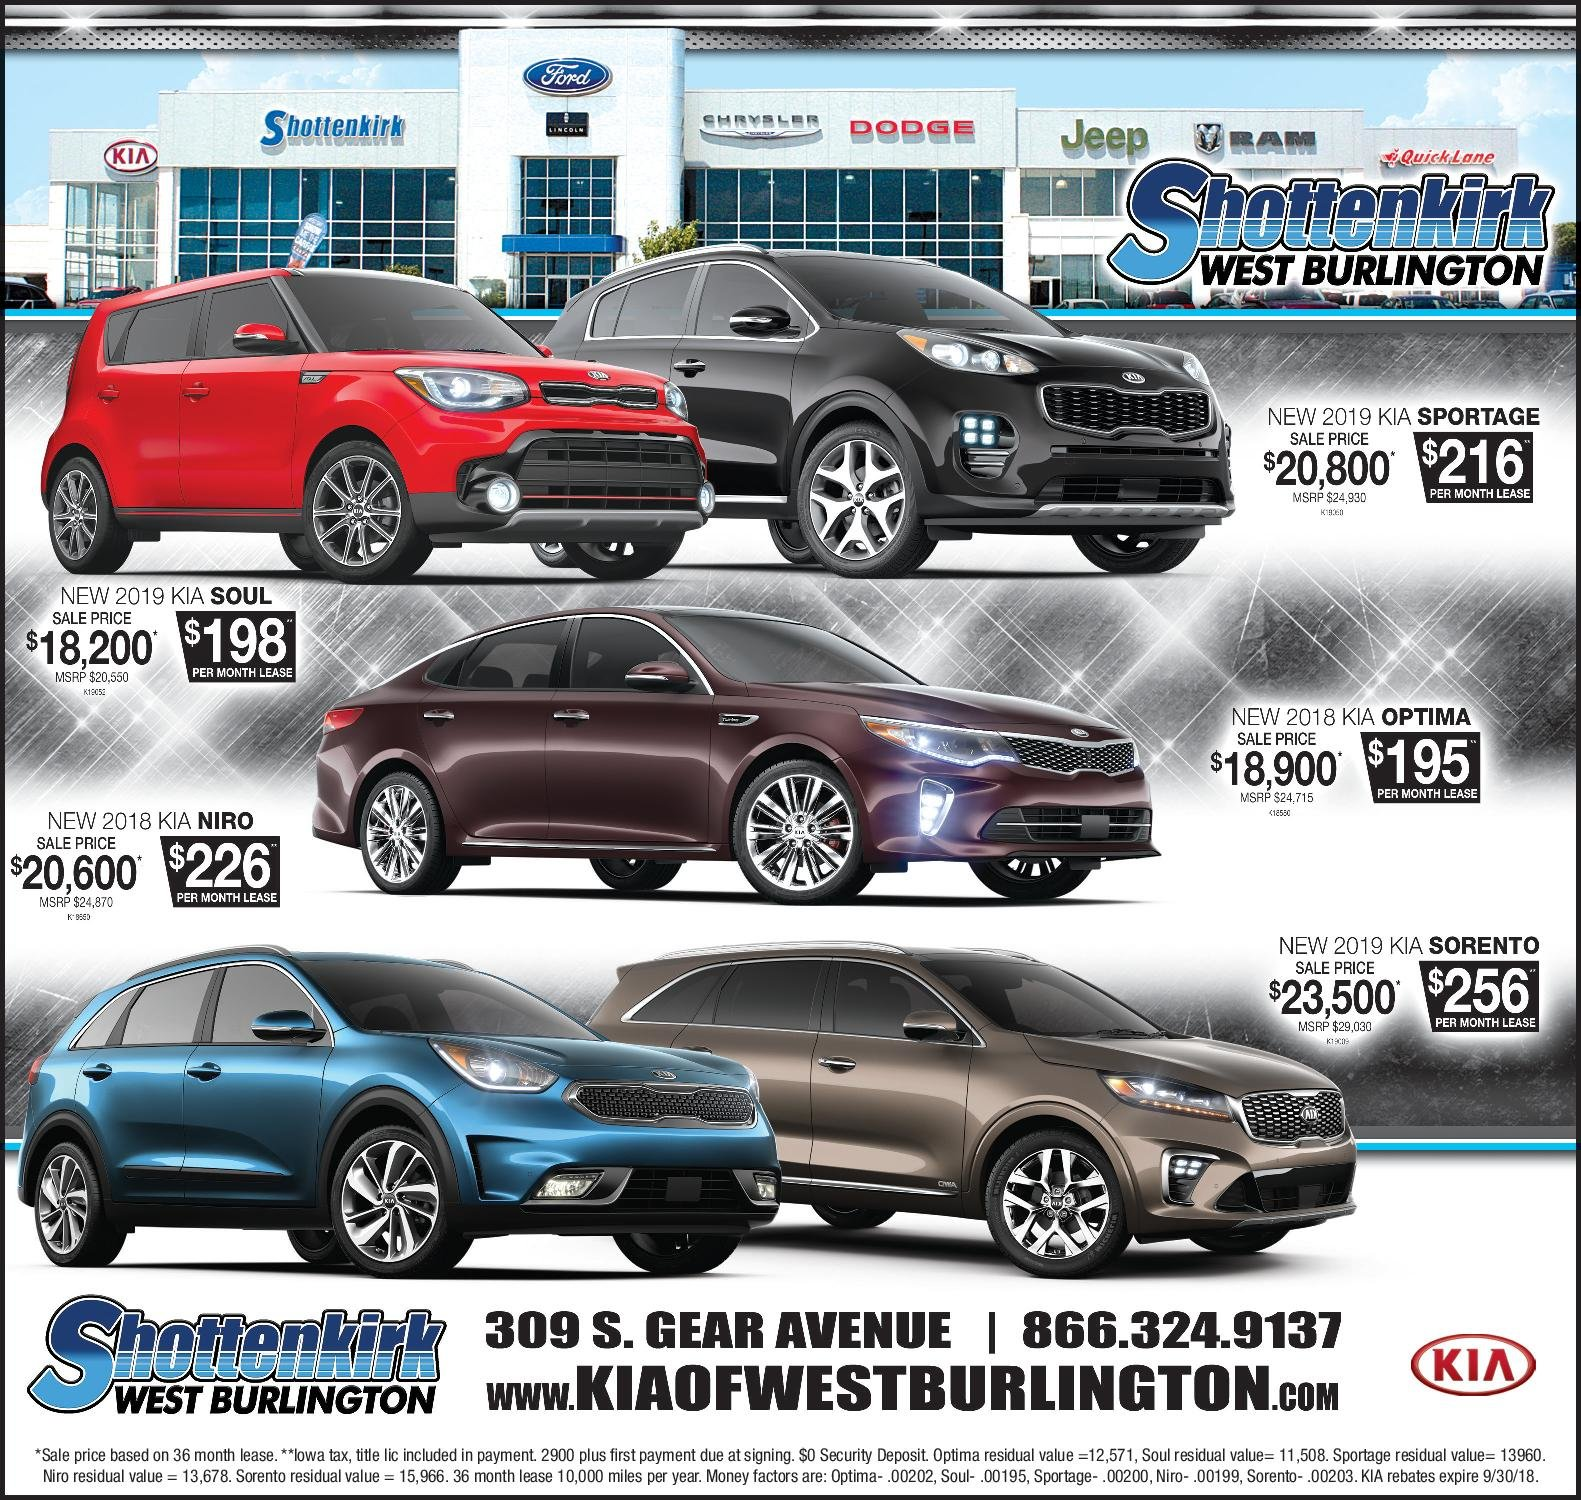 Used Cars for Sale 1000 or Less Near Me Unique West Burlington Lincoln Jeep Kia Chrysler Dodge Jeep ford